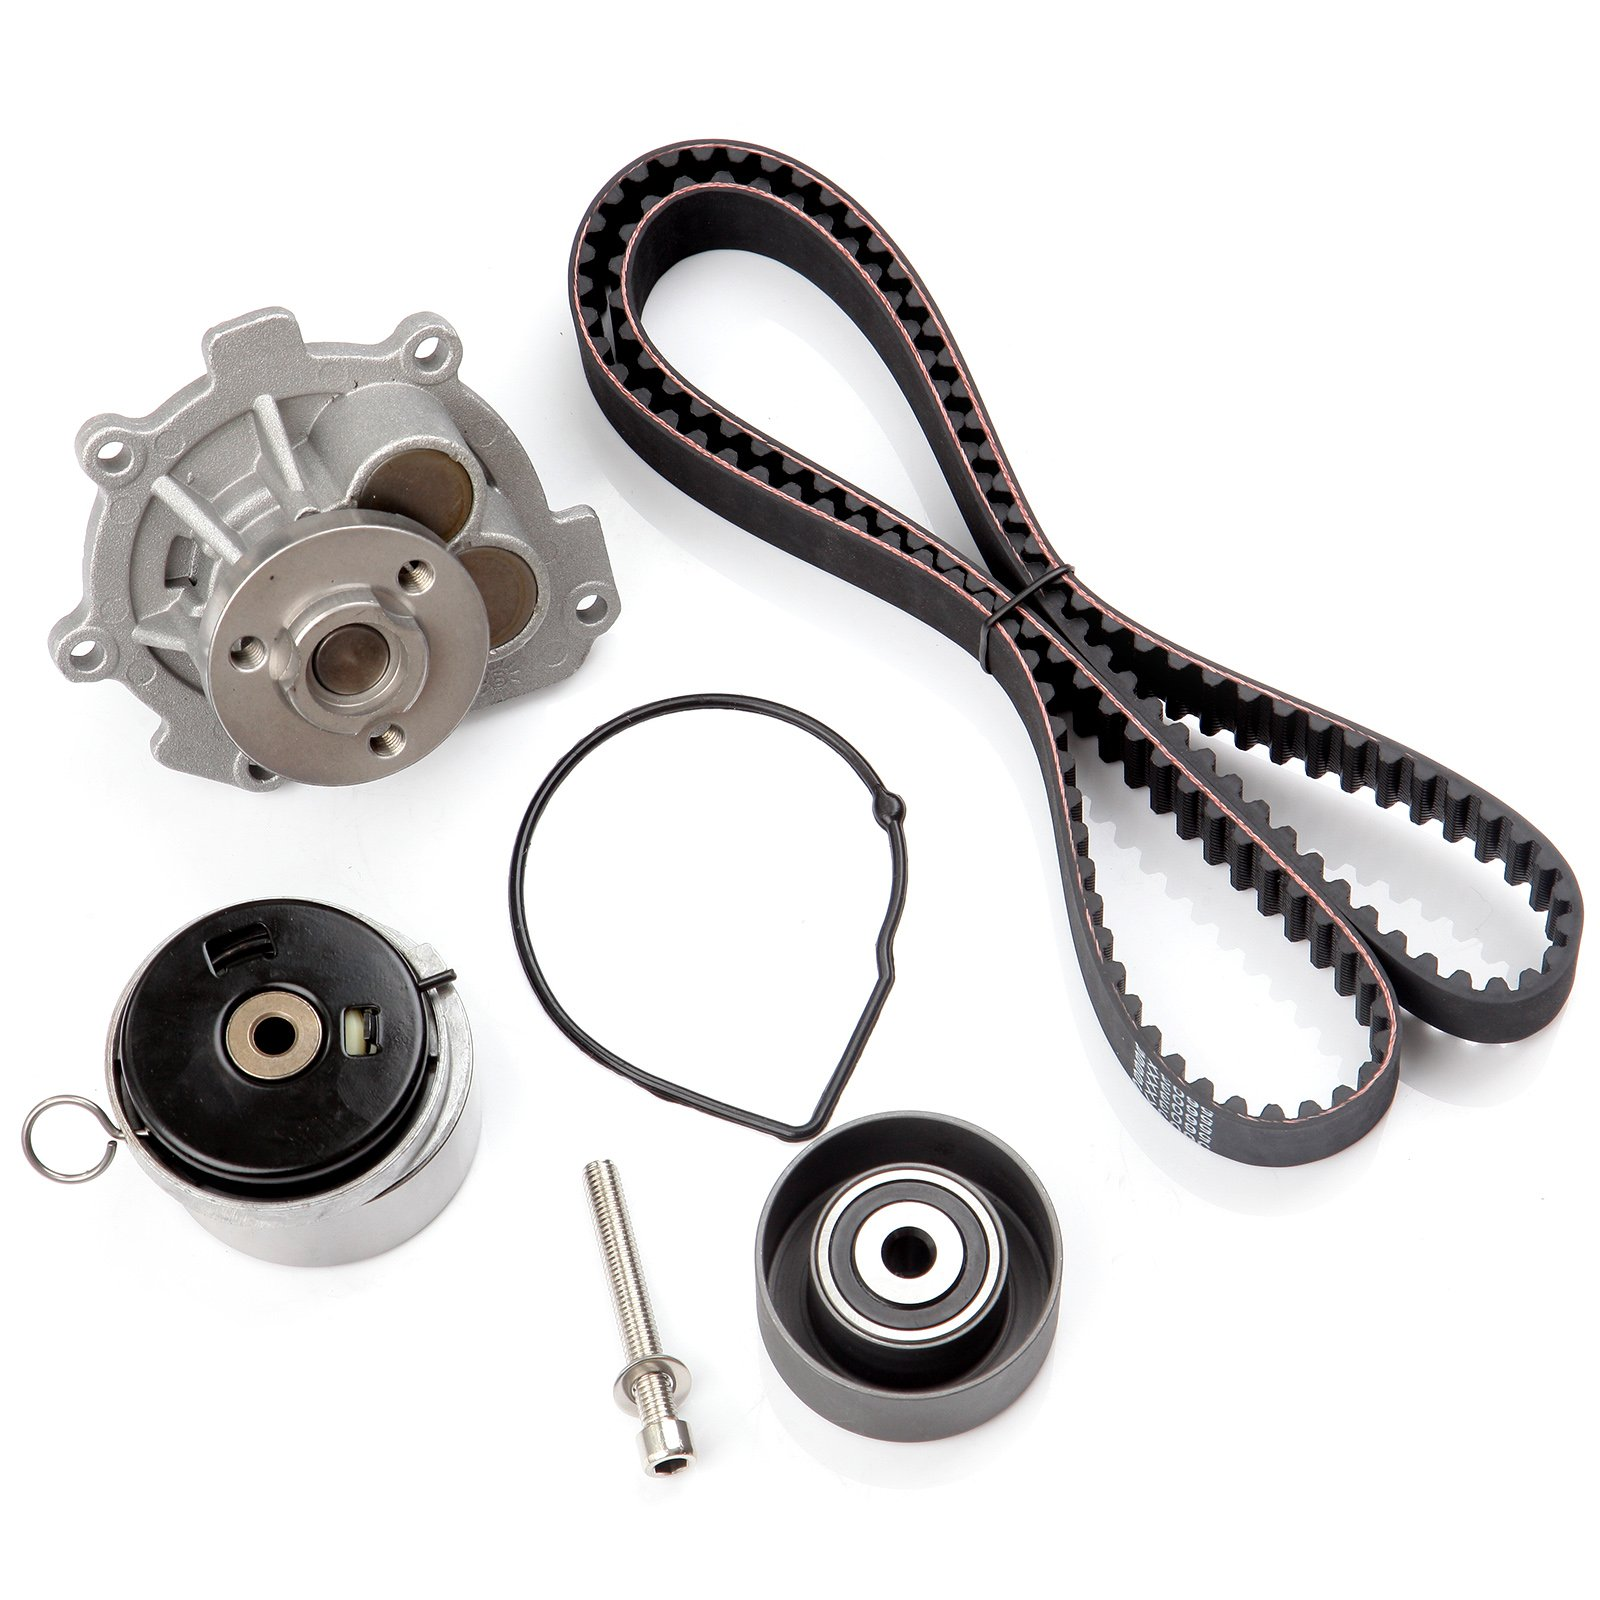 Scitoo Timing Belt Water Pump Kit Fit 2008 2014 Pontiac G3 Wave Chevy Aveo Cover Saturn Astra Suzuki Swift Chevrolet Cruze Sonic Aveo5 4cyl 16l 18l